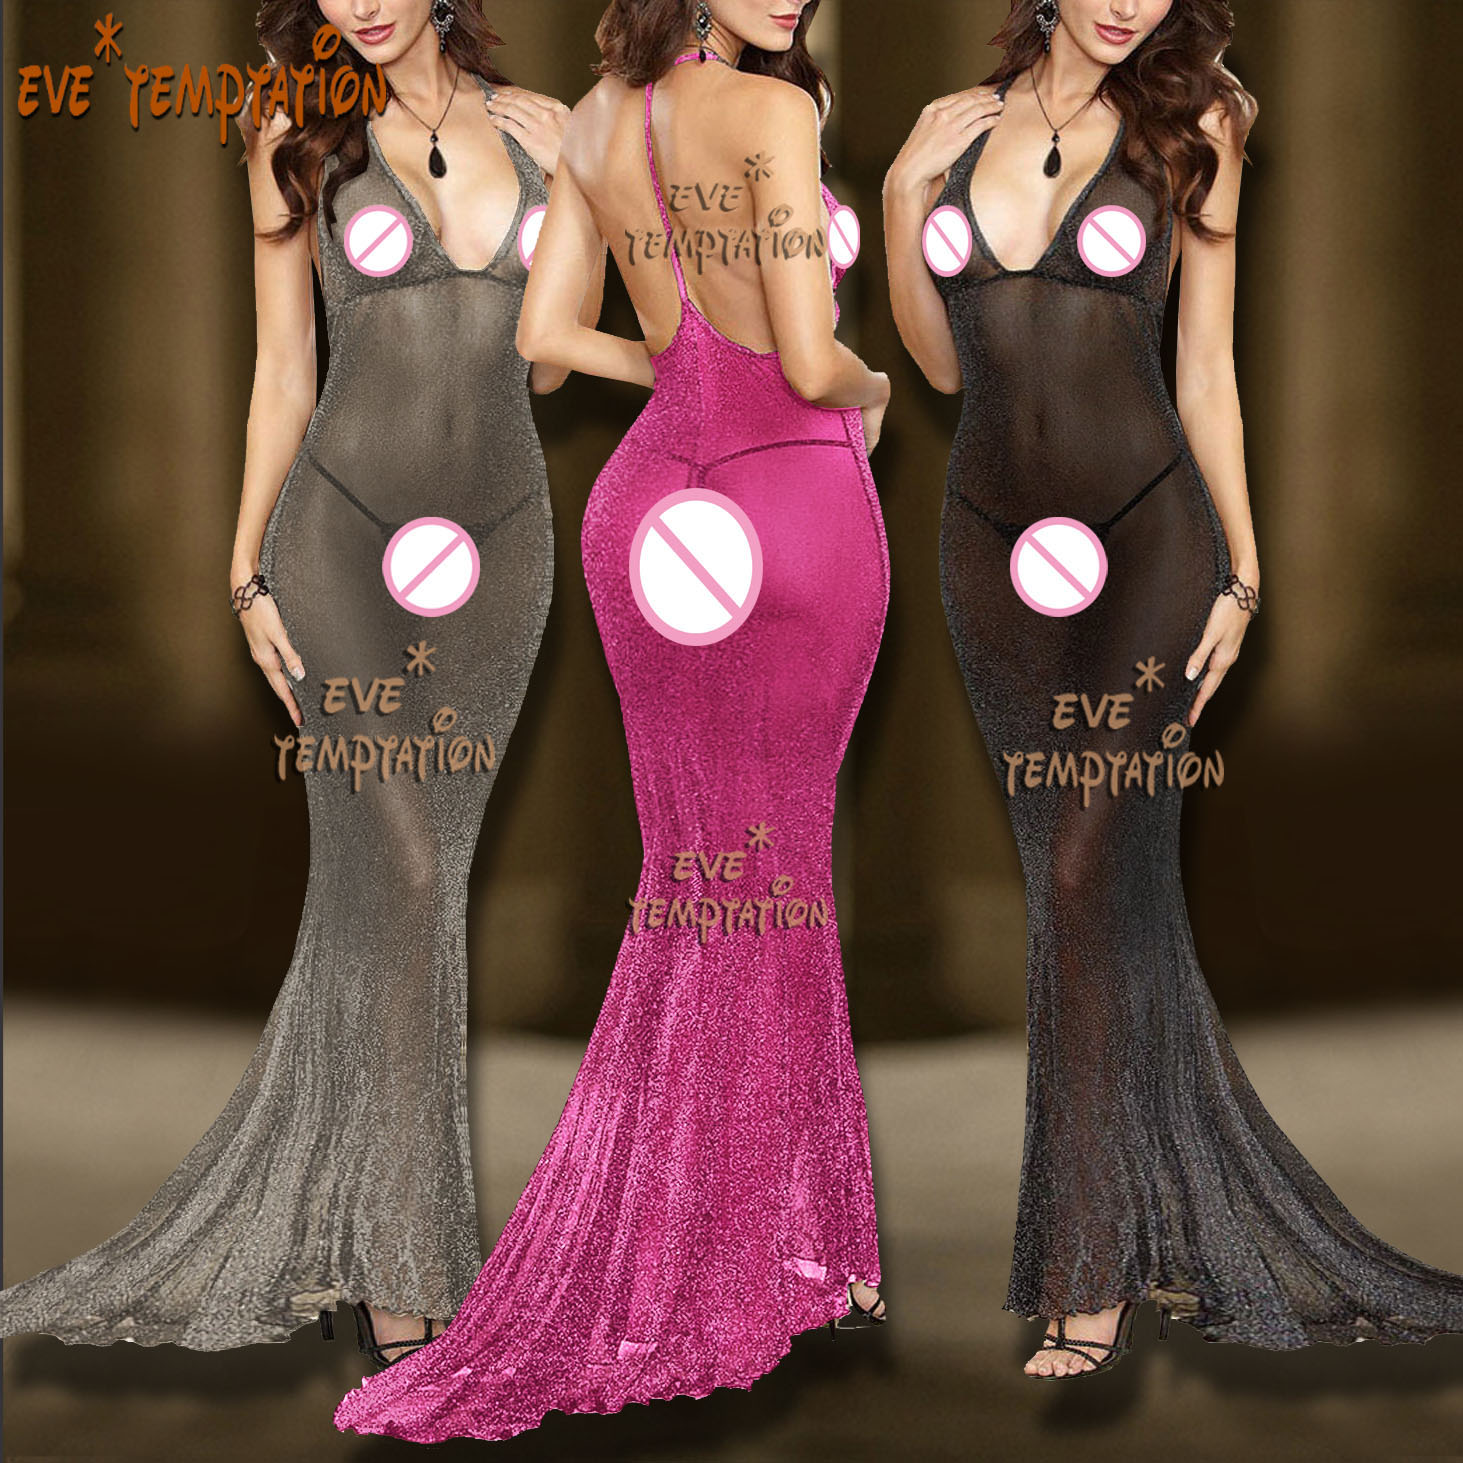 Babydolls sexy relucir sin espalda Lencería Sheer Underwear Costume Dovetail dress baby doll dress Body stocking Ropa interior 6670